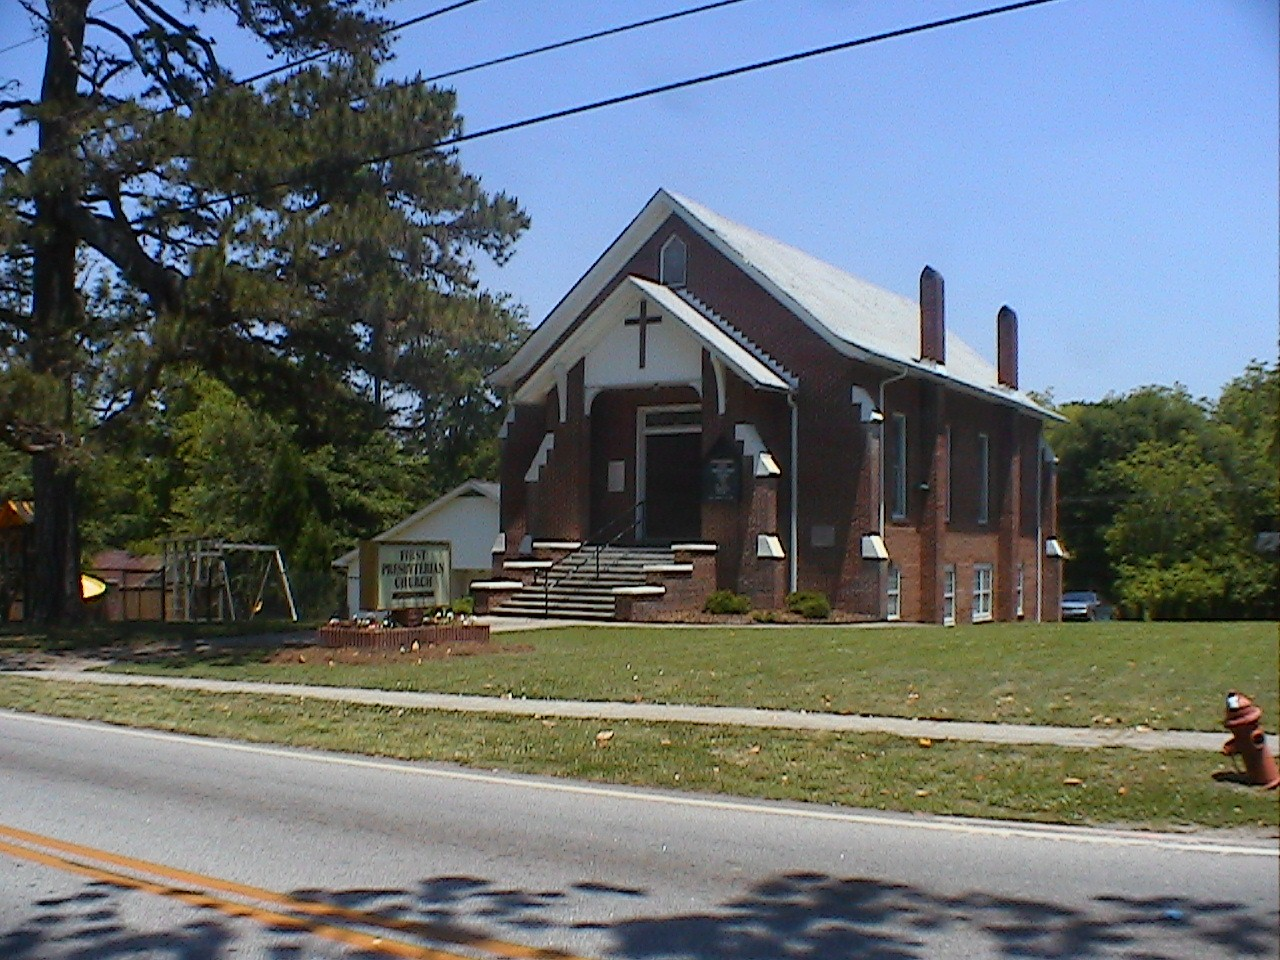 First Presbyterian Church of Villa Rica, Photograph by Ernest E. Blevins, MFA 26 May 2005